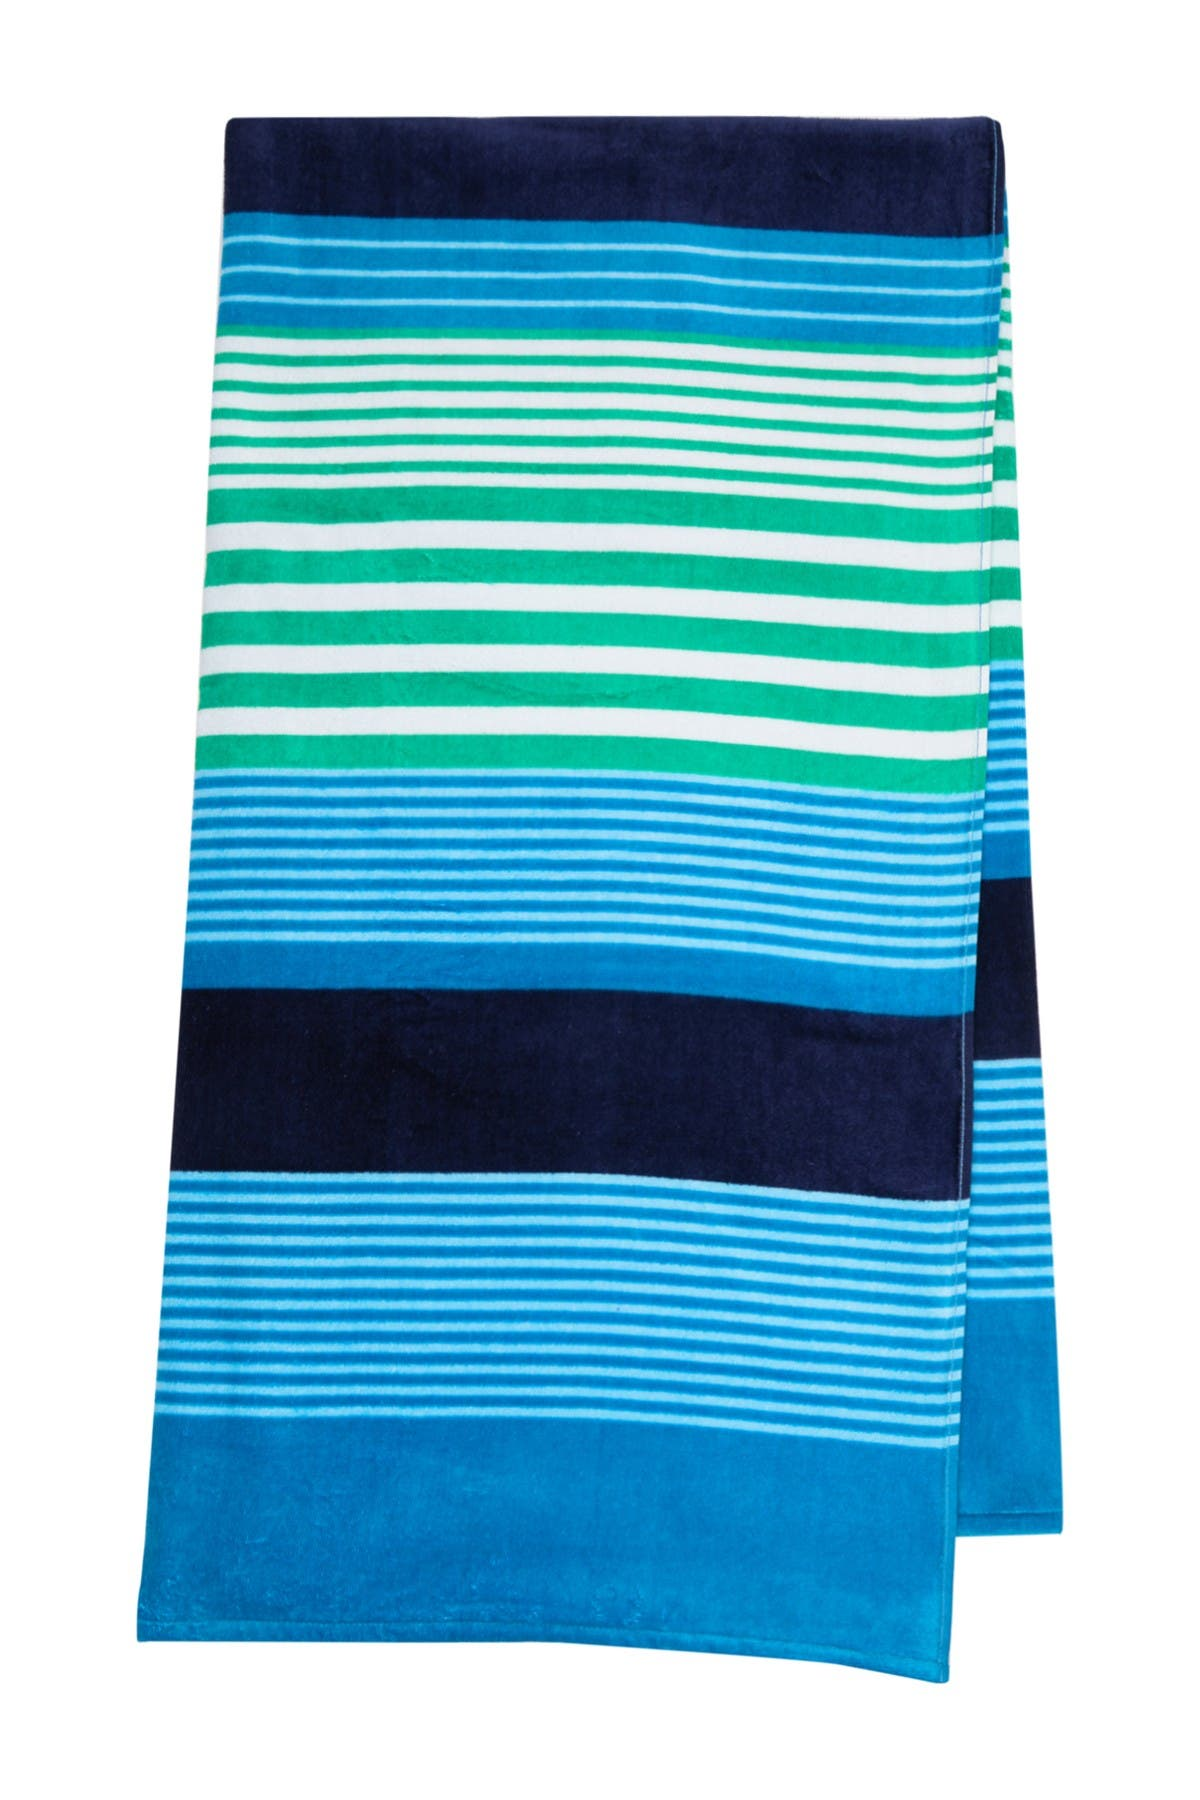 Image of Apollo Towels New Times Stripes Print Beach Towel